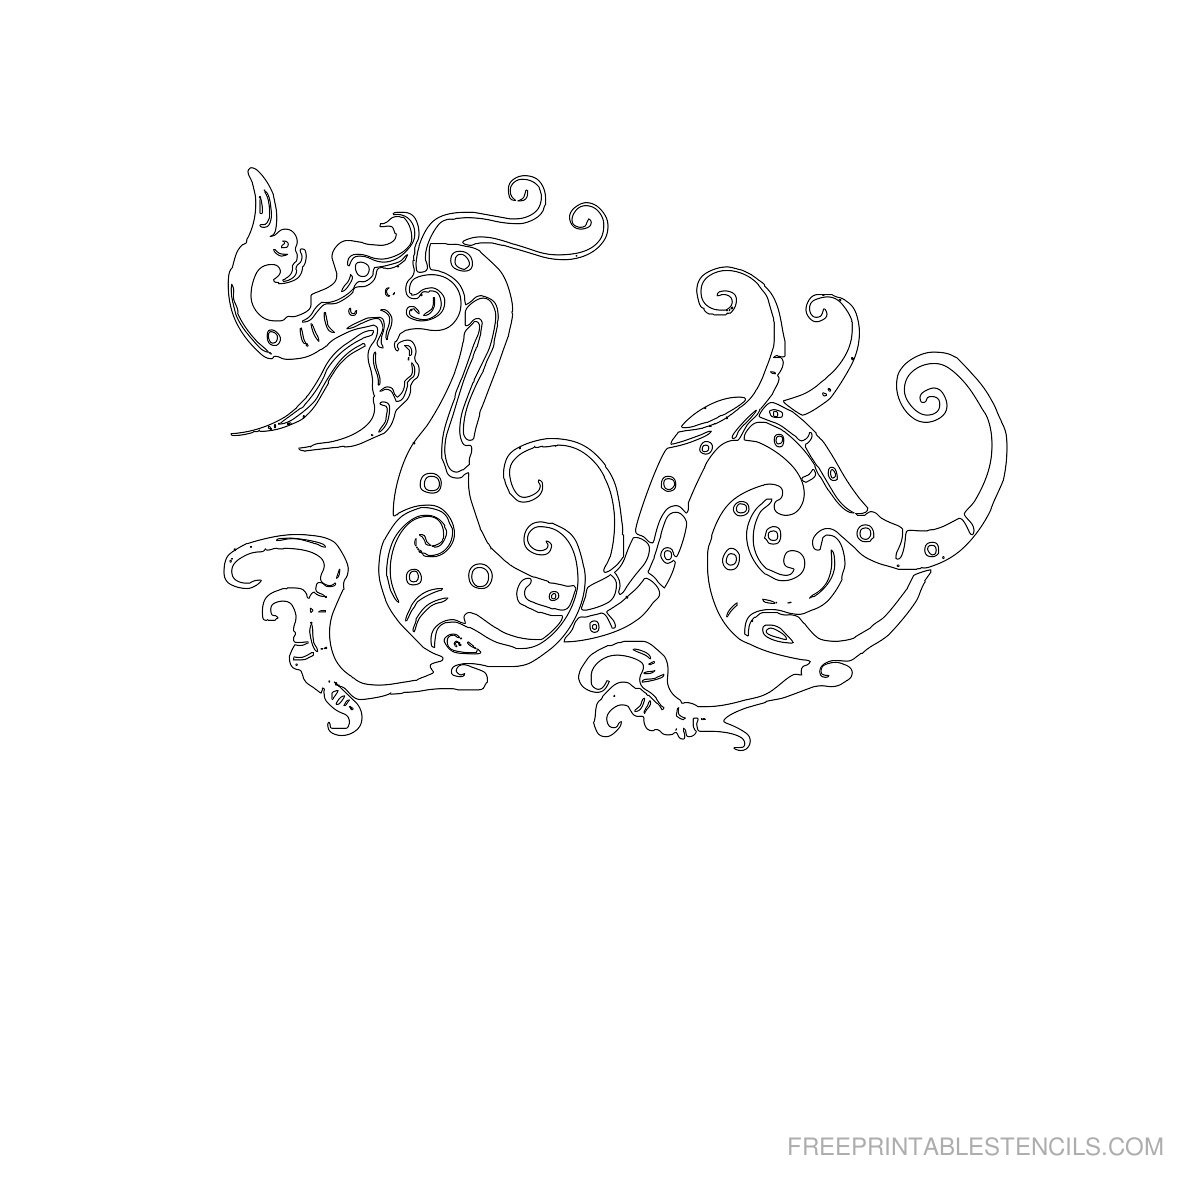 Dragon Stencils Printable Pictures   Free Printable Stencils - Free Printable Dragon Stencils